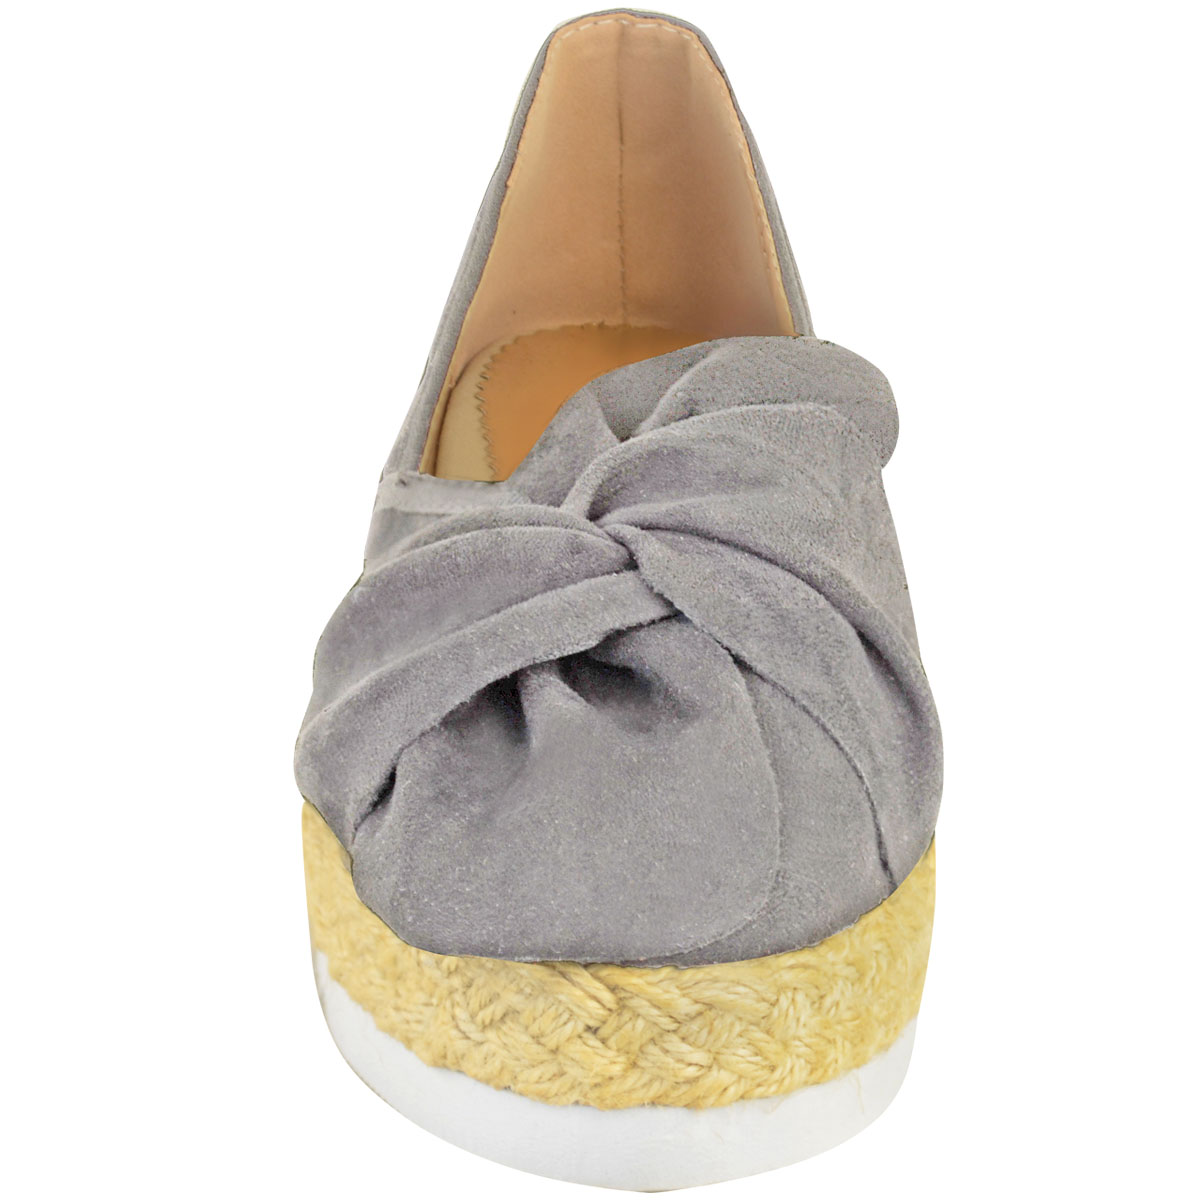 Womens-Ladies-Espadrilles-Flat-Pom-Pom-Sandals-Slip-On-Strappy-Comfy-Size-Shoes thumbnail 41